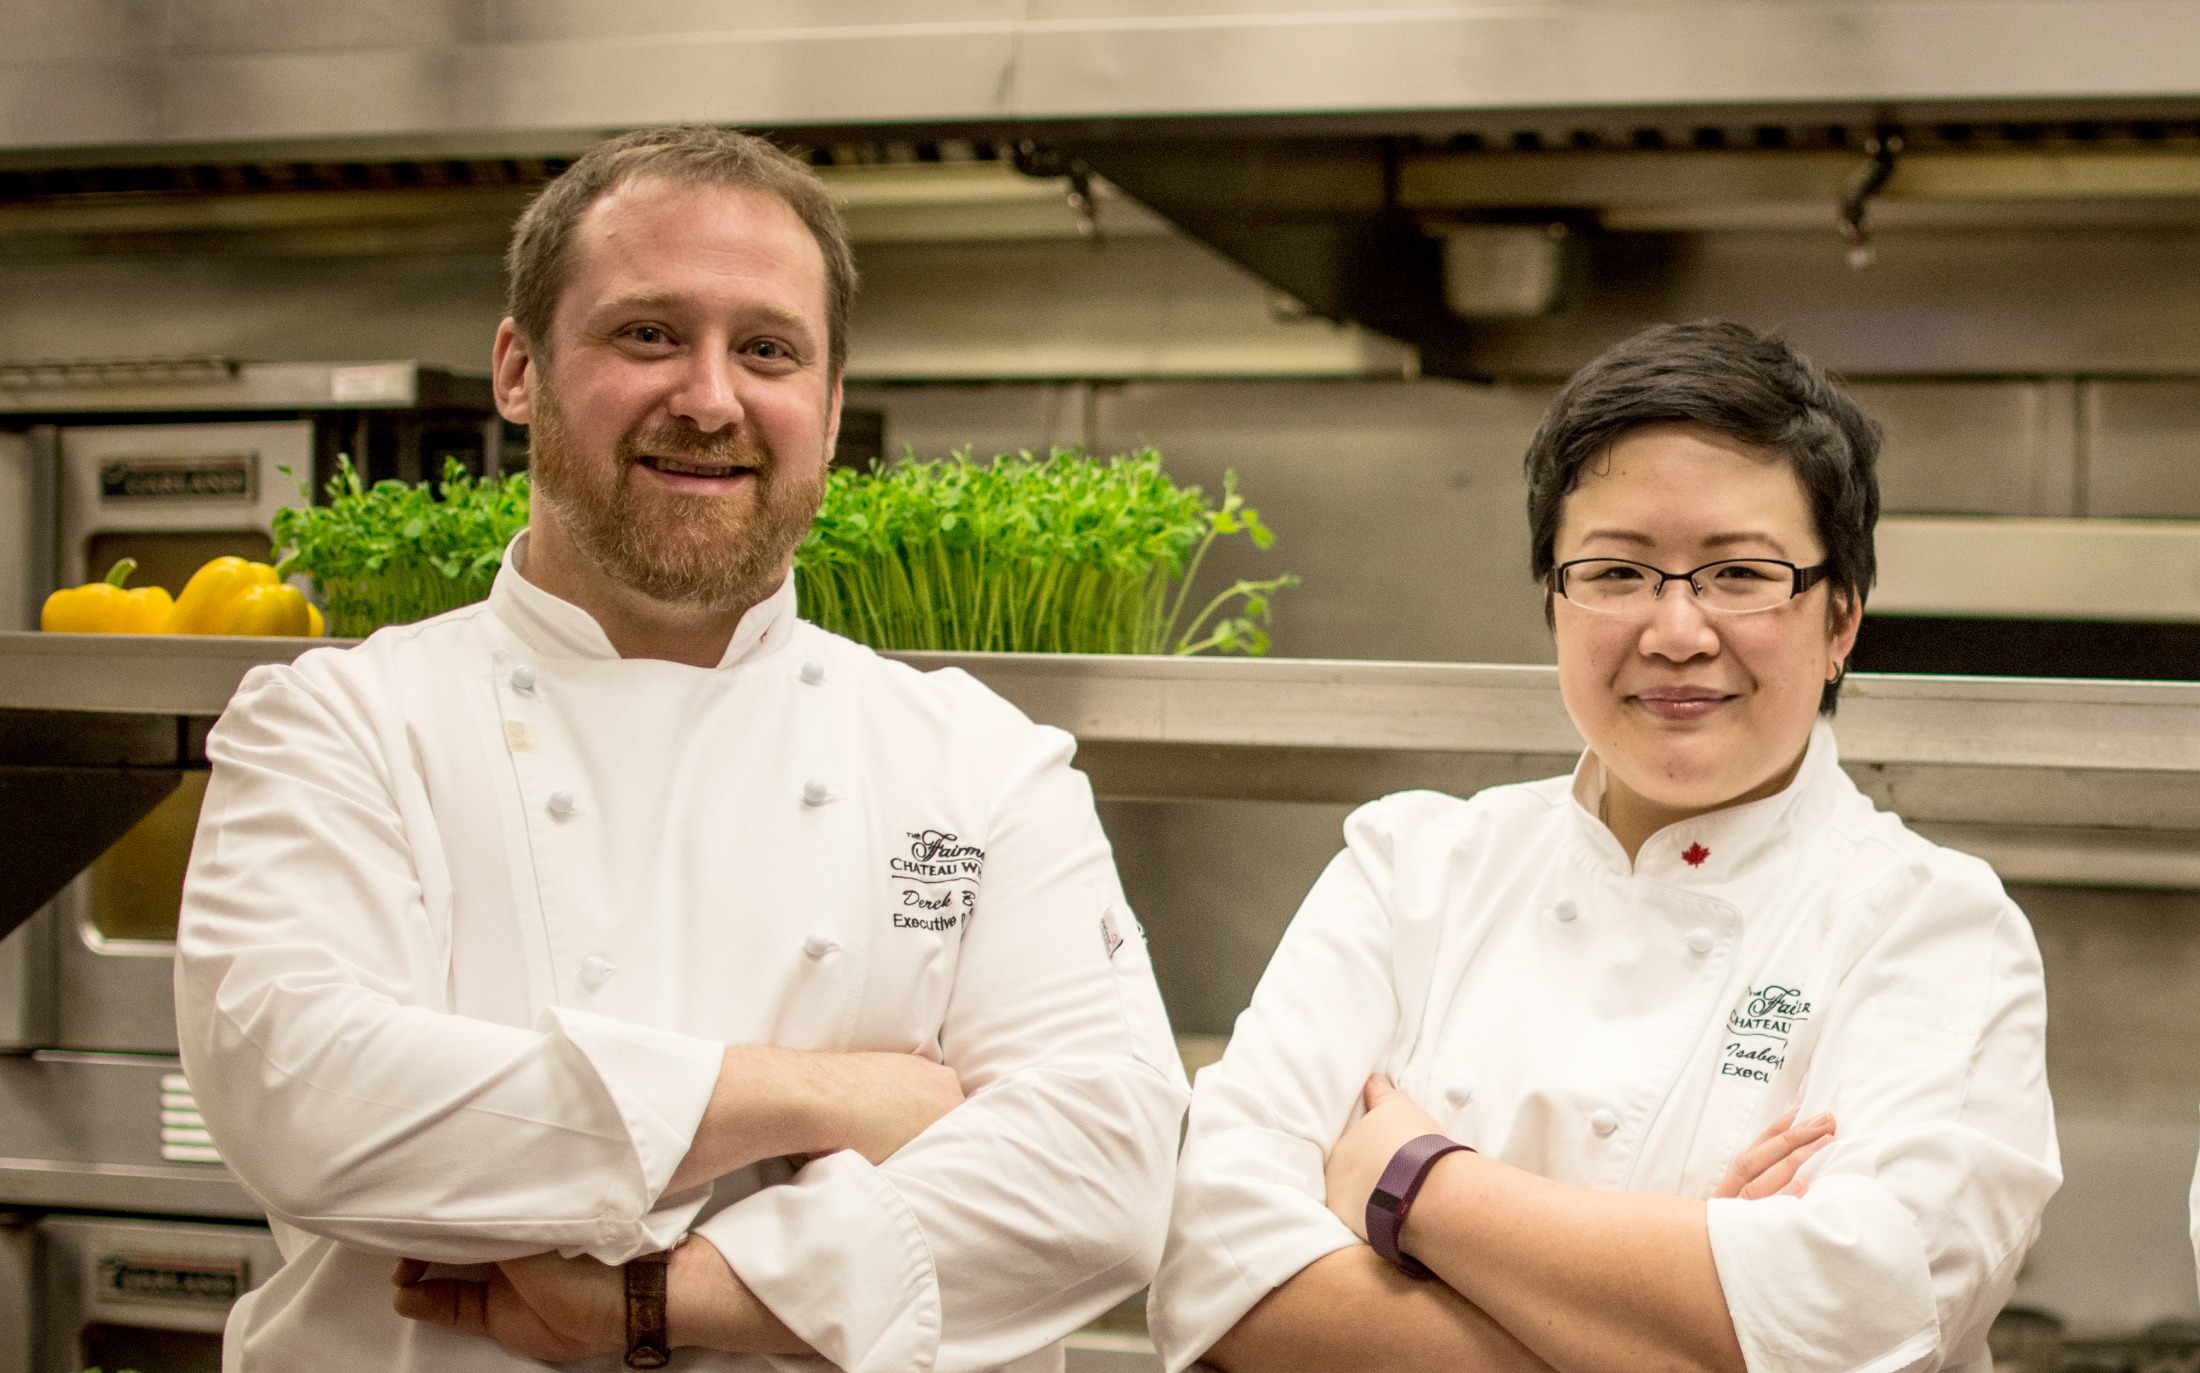 Fairmont Chateau Whistler executive chef Isabel Chung and executive sous chef Derek Bendig